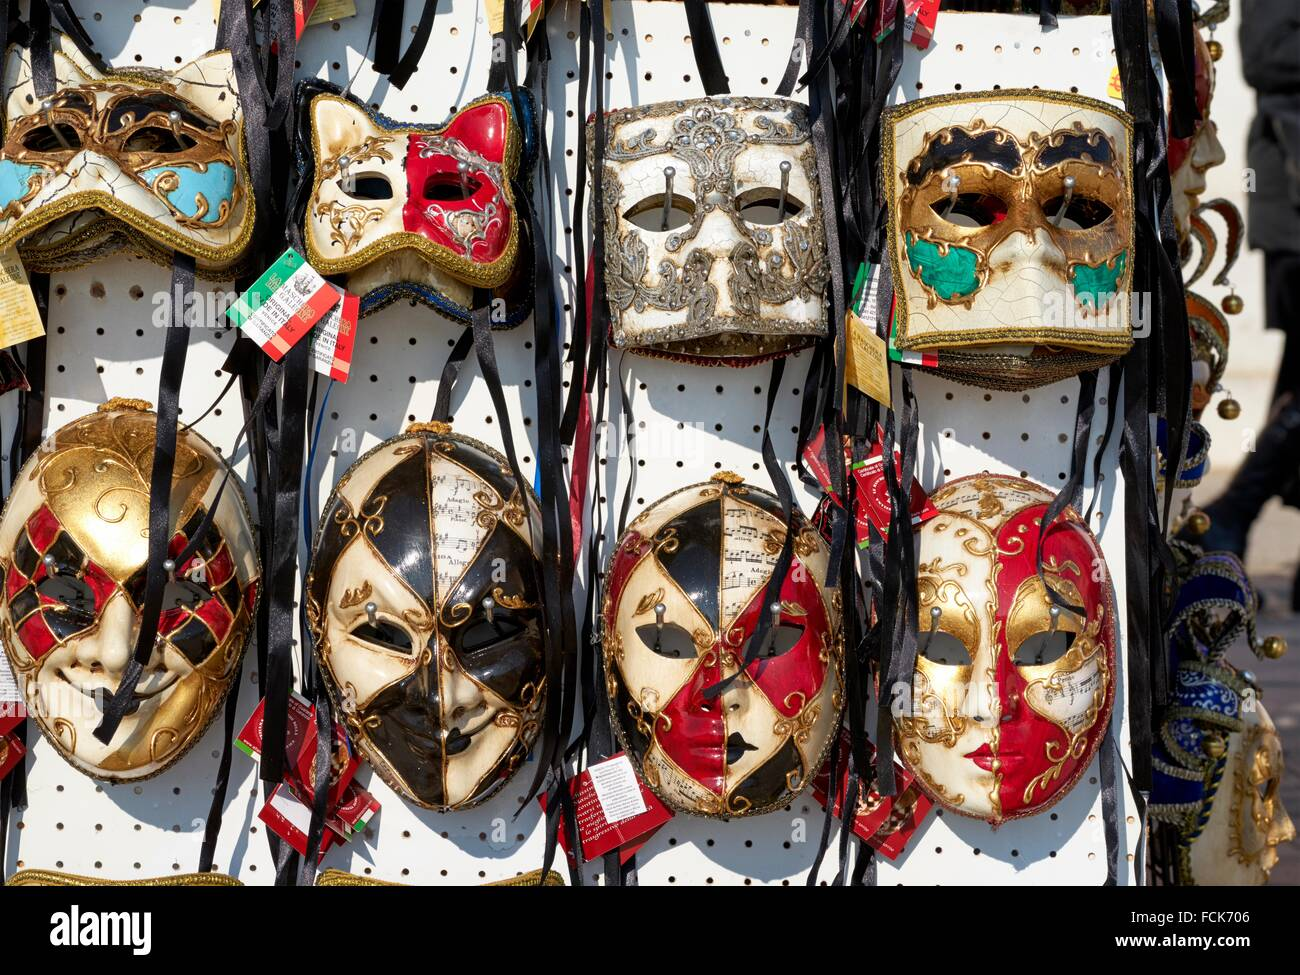 Artistic masks for sale at the Carnival in Venice, Italy Stock Photo